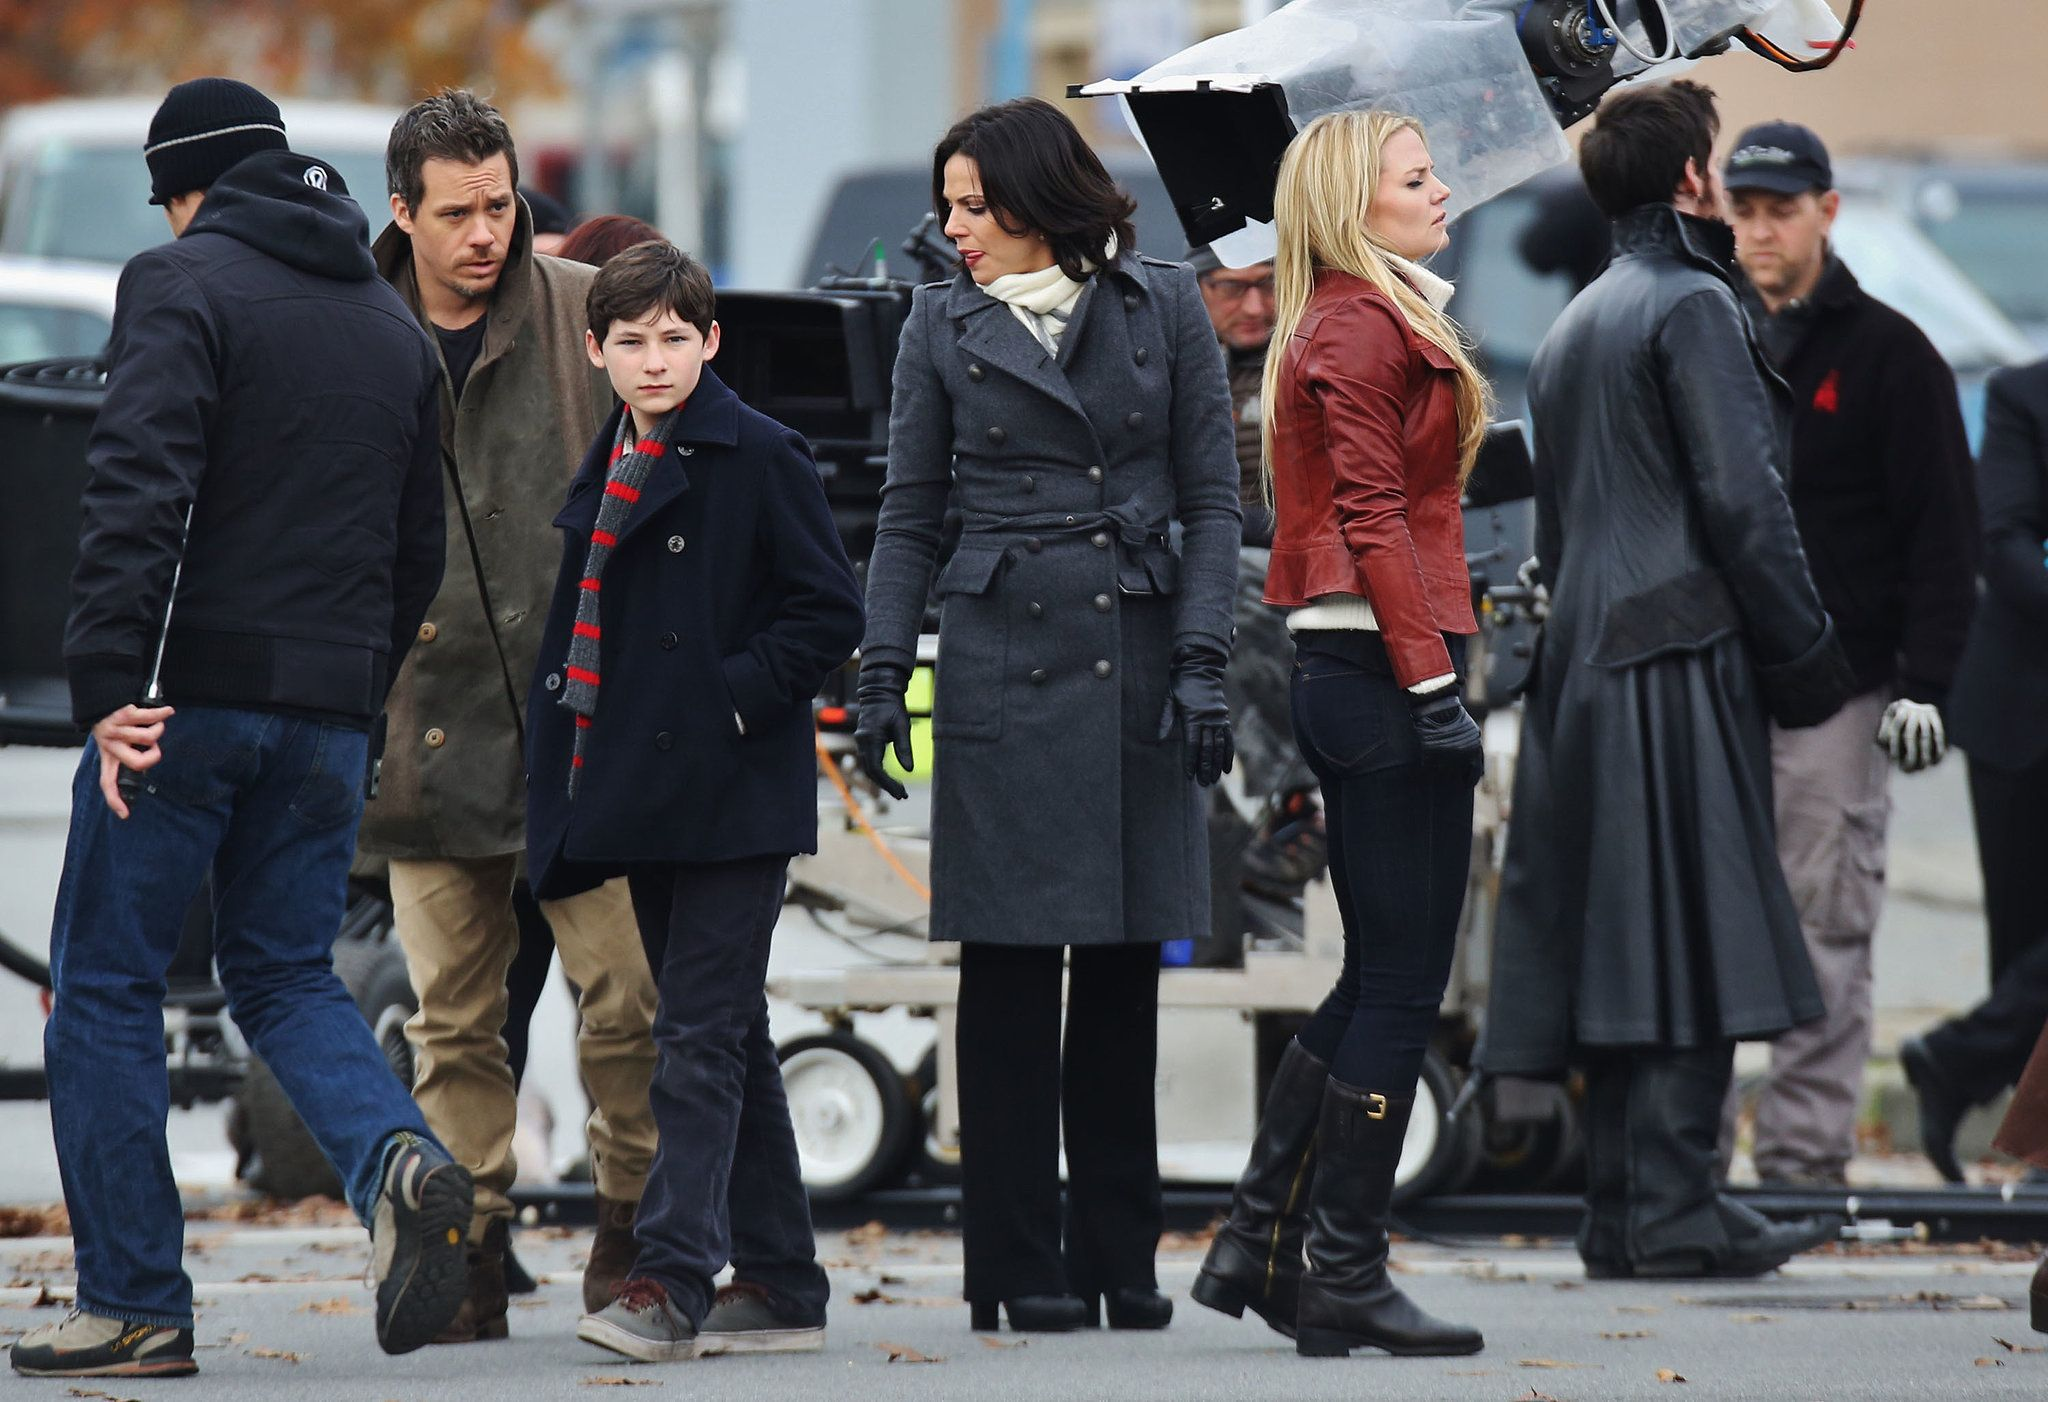 Lana Parrilla, Jared Gilmore, Jennifer Morrison, and Colin O'Donoghue on the set of Once Upon a Time.